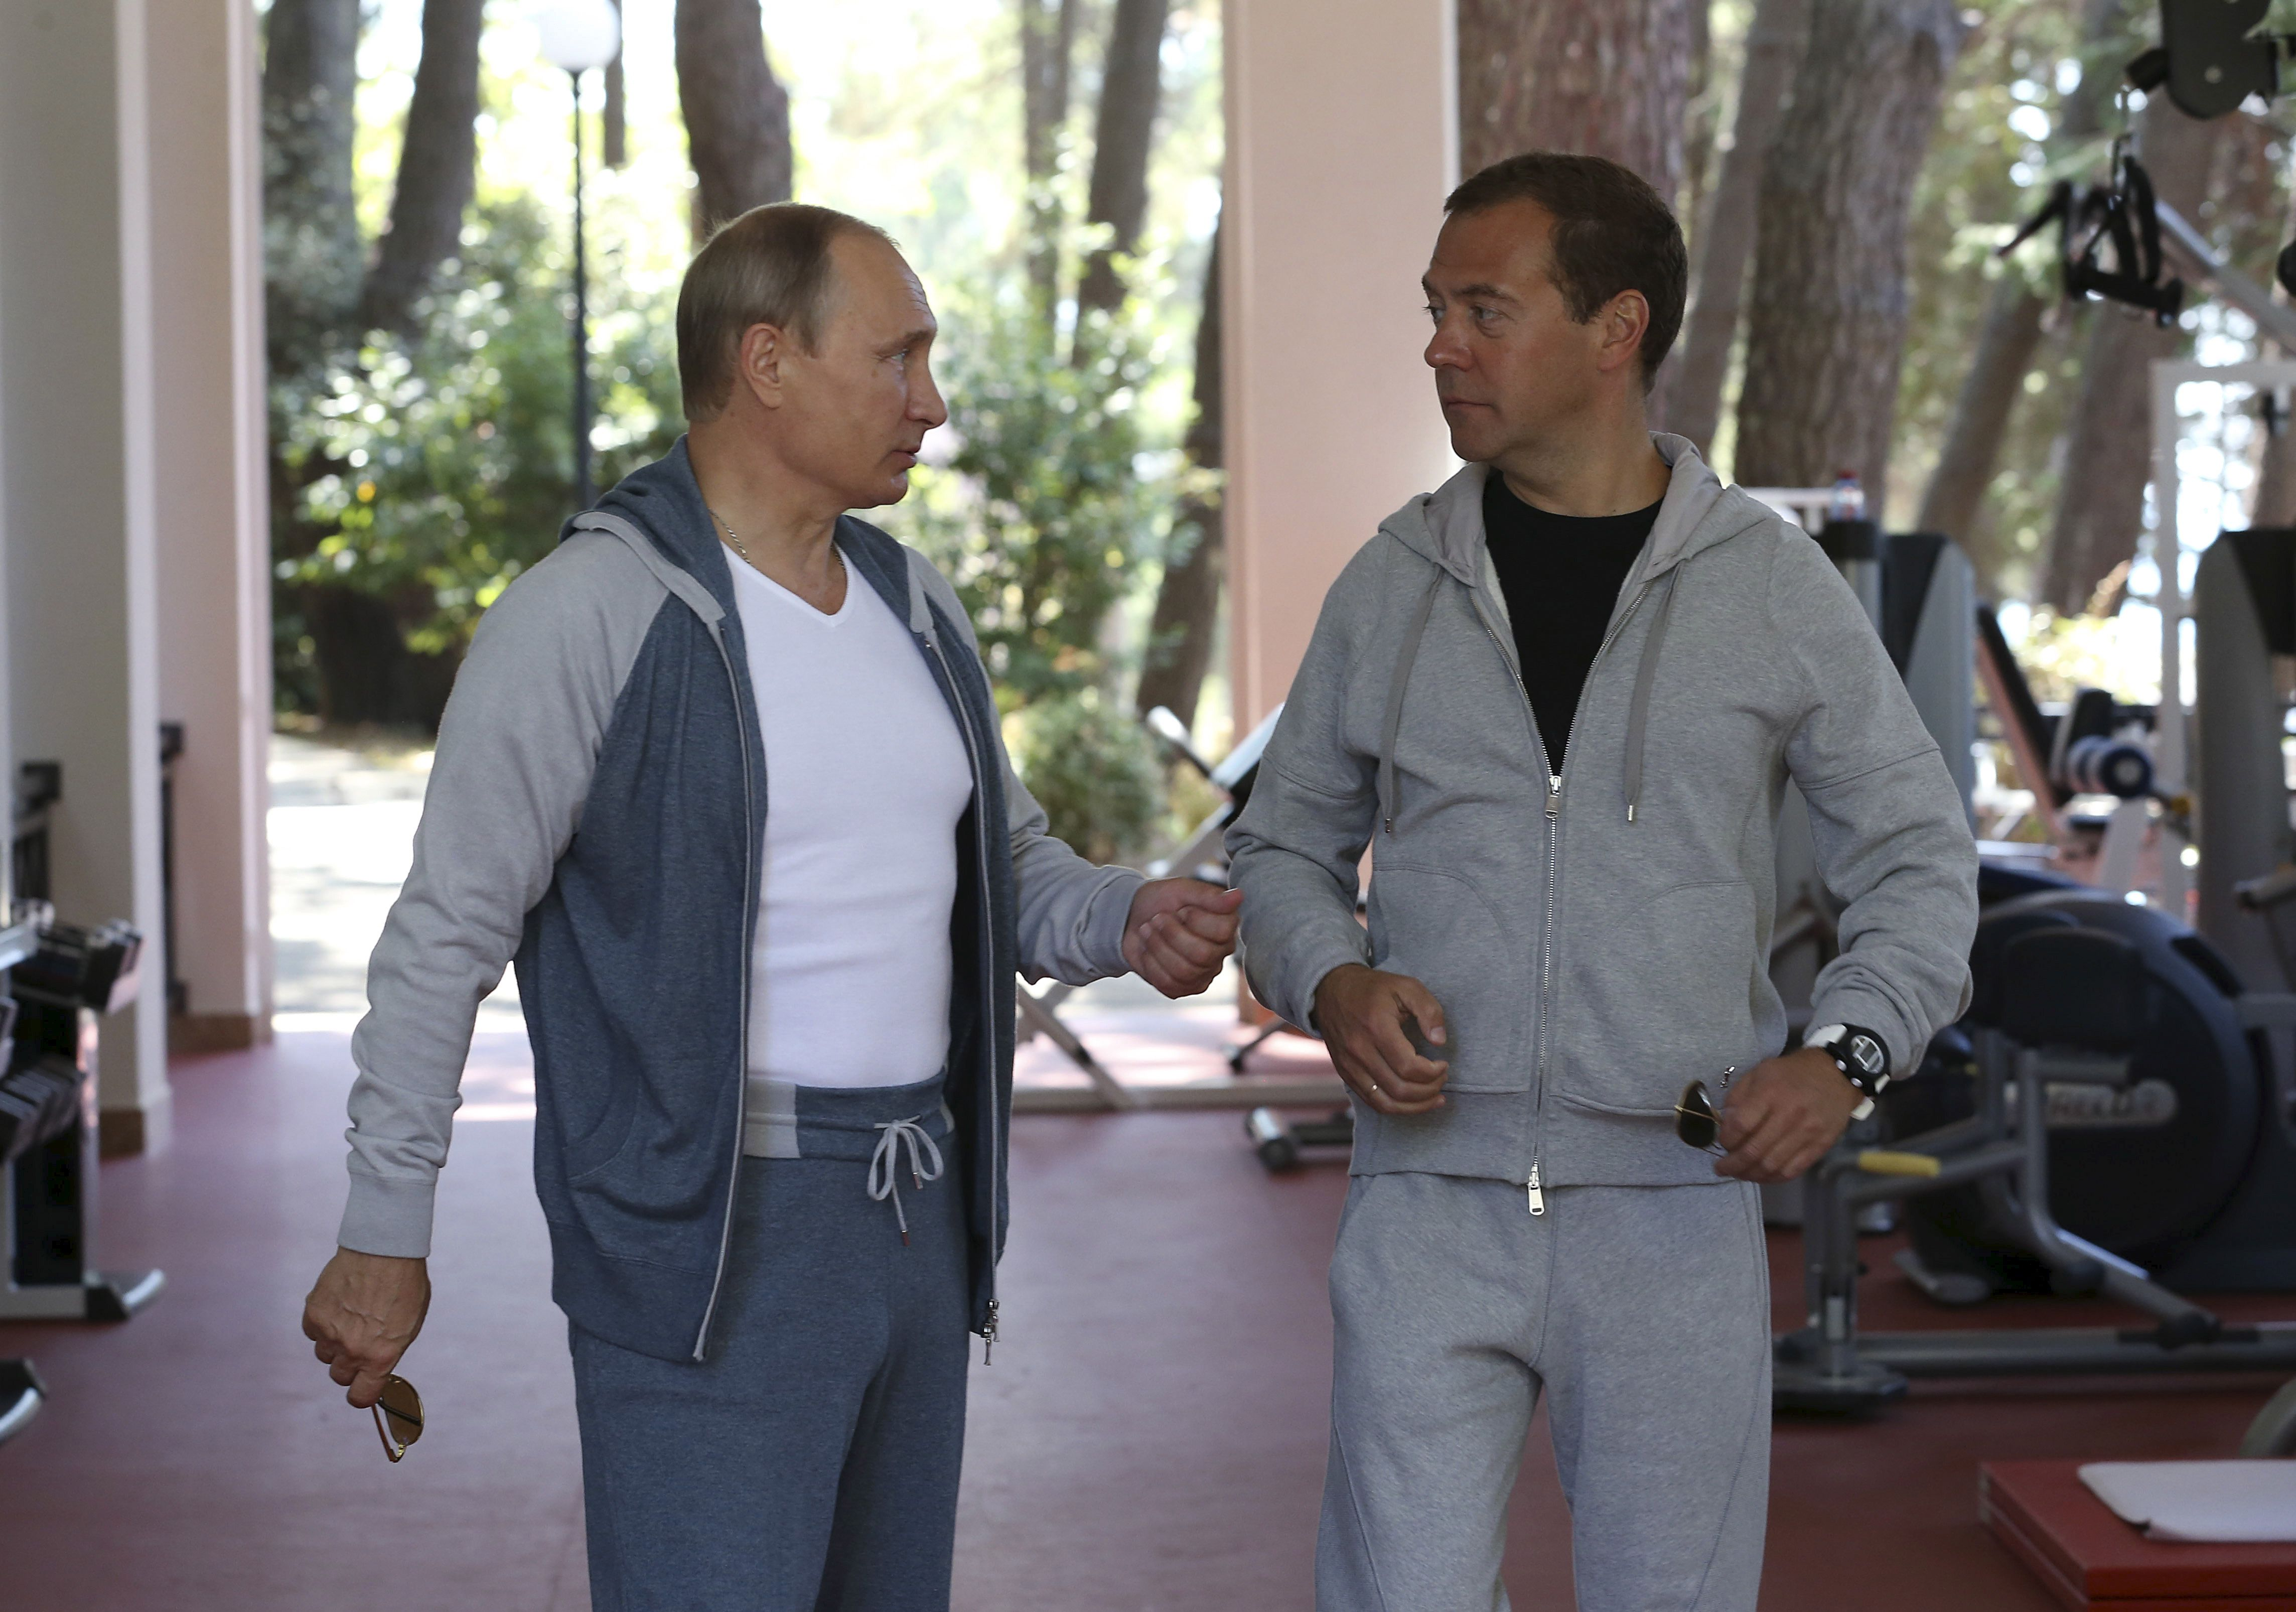 Russian President Vladimir Putin (L) talks with Prime Minister Dmitry Medvedev in a gym at the Bocharov Ruchei state residence in Sochi, Russia, August 30, 2015. REUTERS/Yekaterina Shtukina/RIA Novosti/Pool ATTENTION EDITORS - THIS IMAGE HAS BEEN SUPPLIED BY A THIRD PARTY. IT IS DISTRIBUTED, EXACTLY AS RECEIVED BY REUTERS, AS A SERVICE TO CLIENTS. - RTX1Q9I5